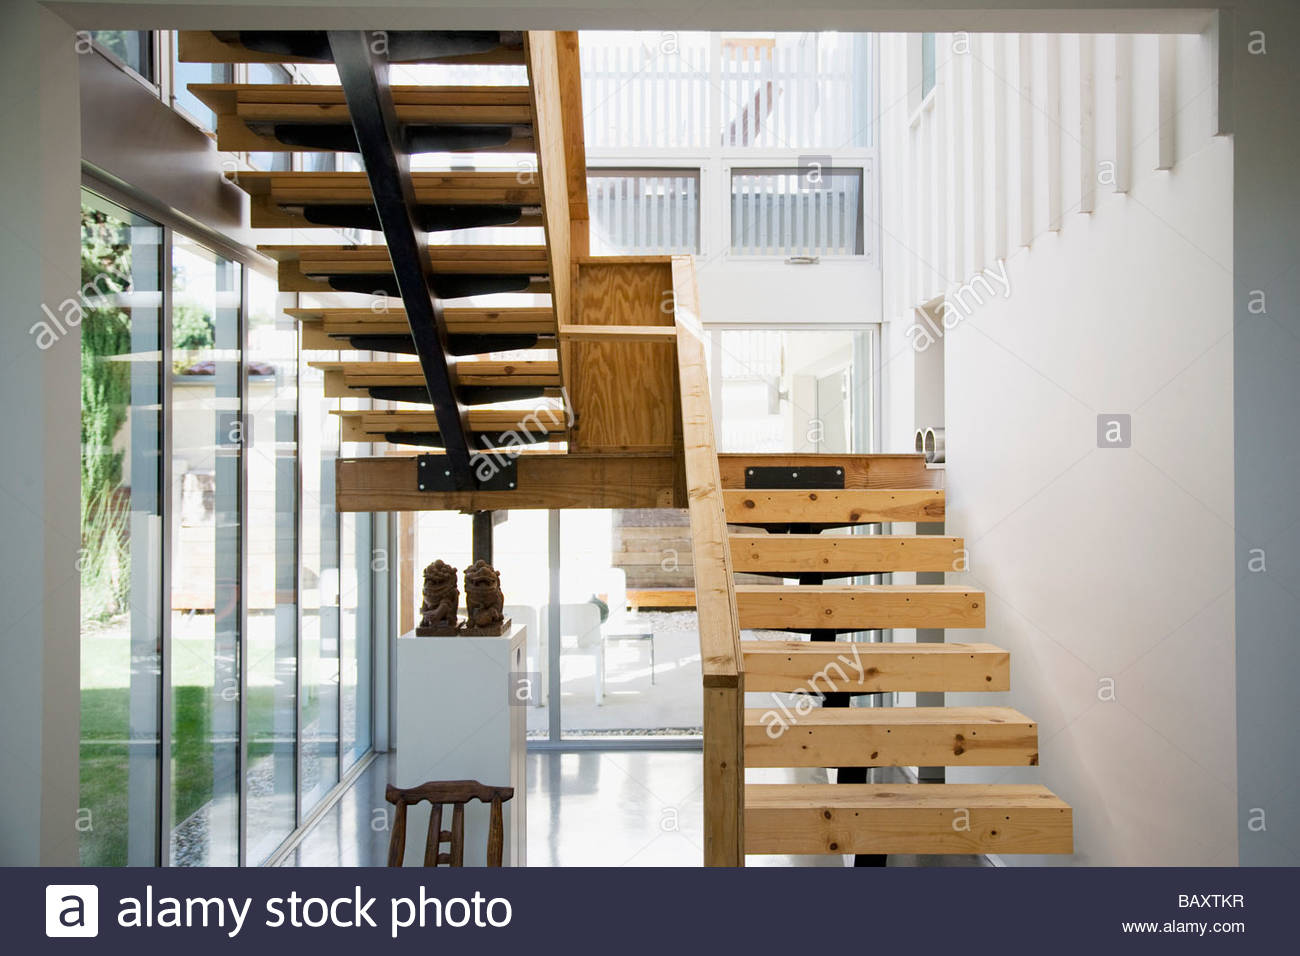 Interior of modern house, wooden stairway - Stock Image